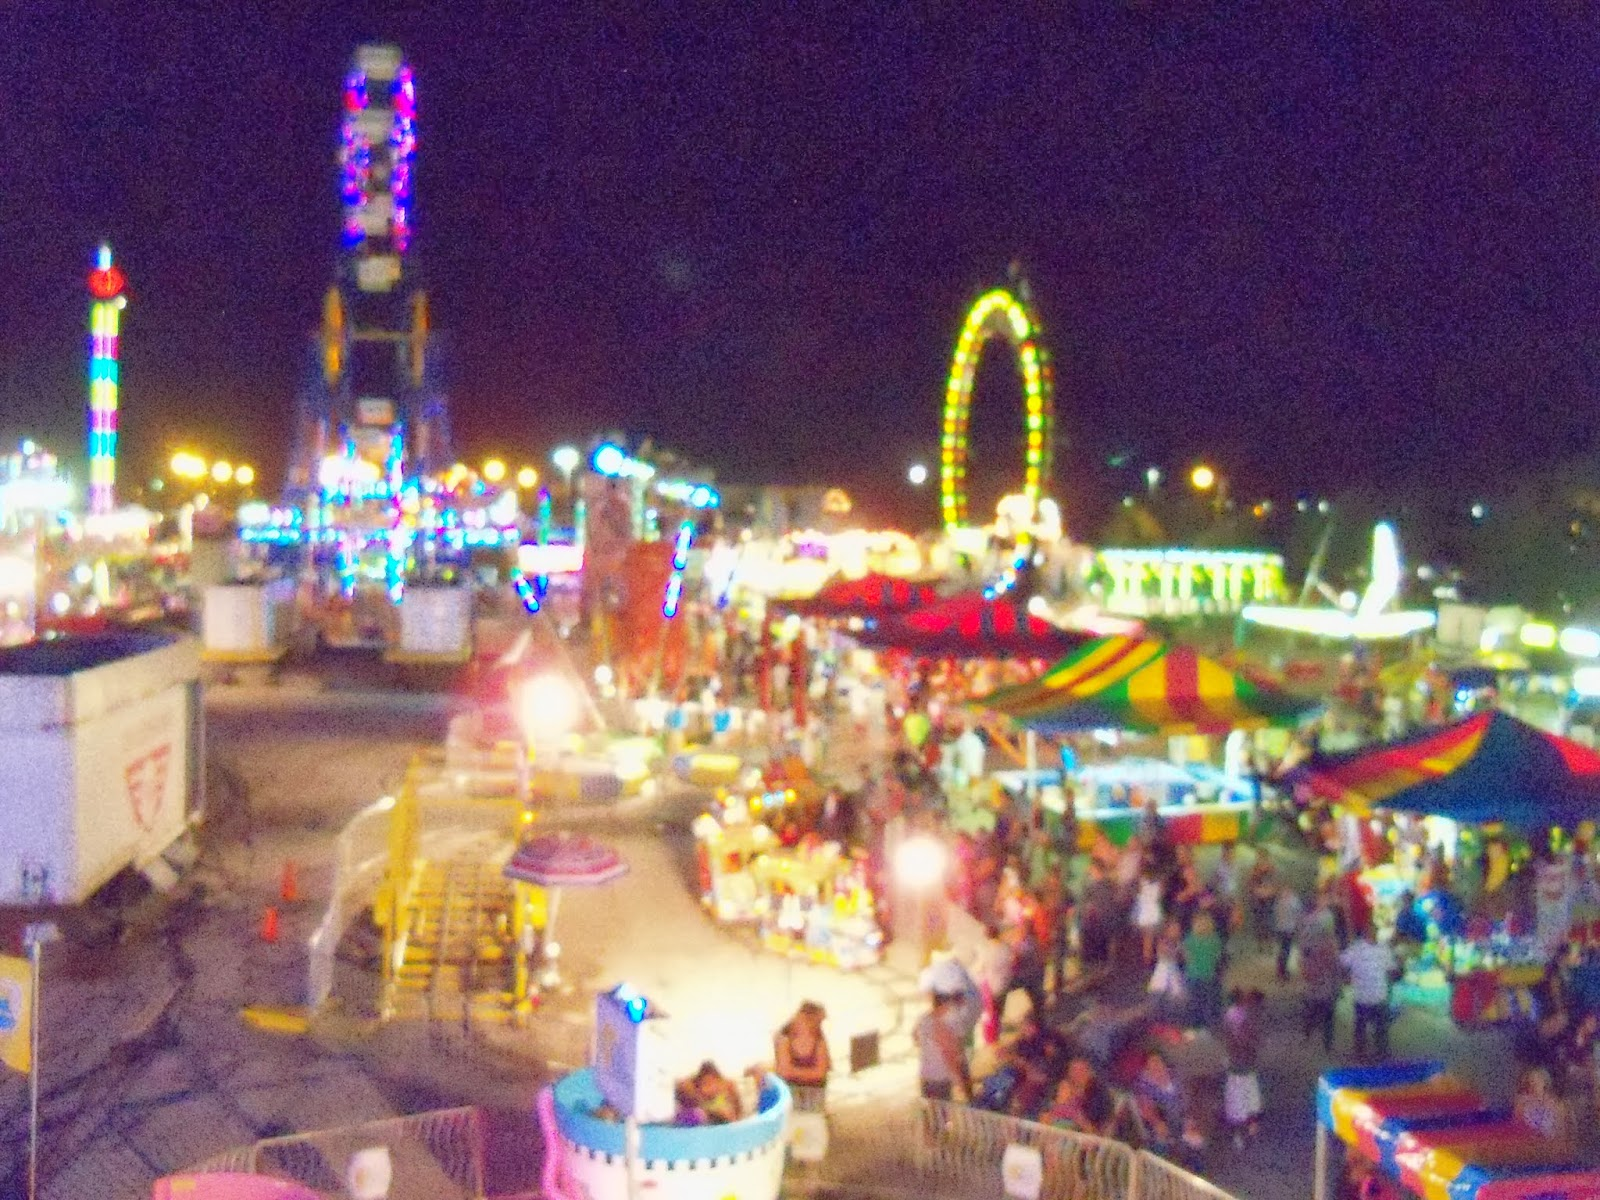 Fort Bend County Fair 2013 - 115_8035.JPG